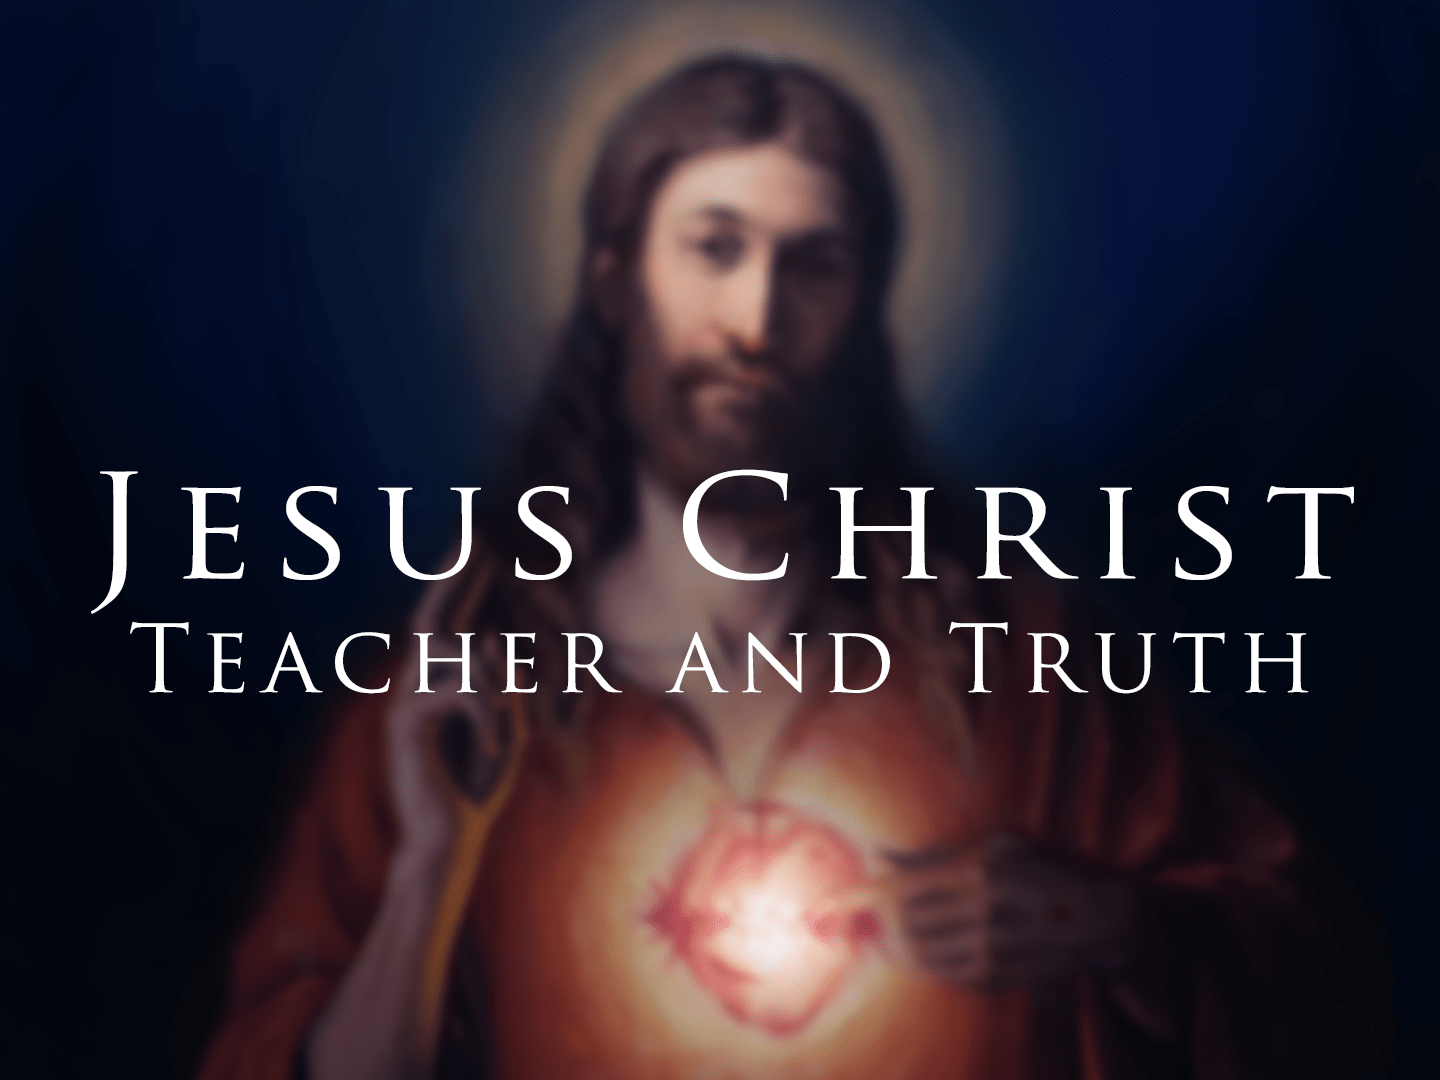 Jesus Christ: Teacher And Truth